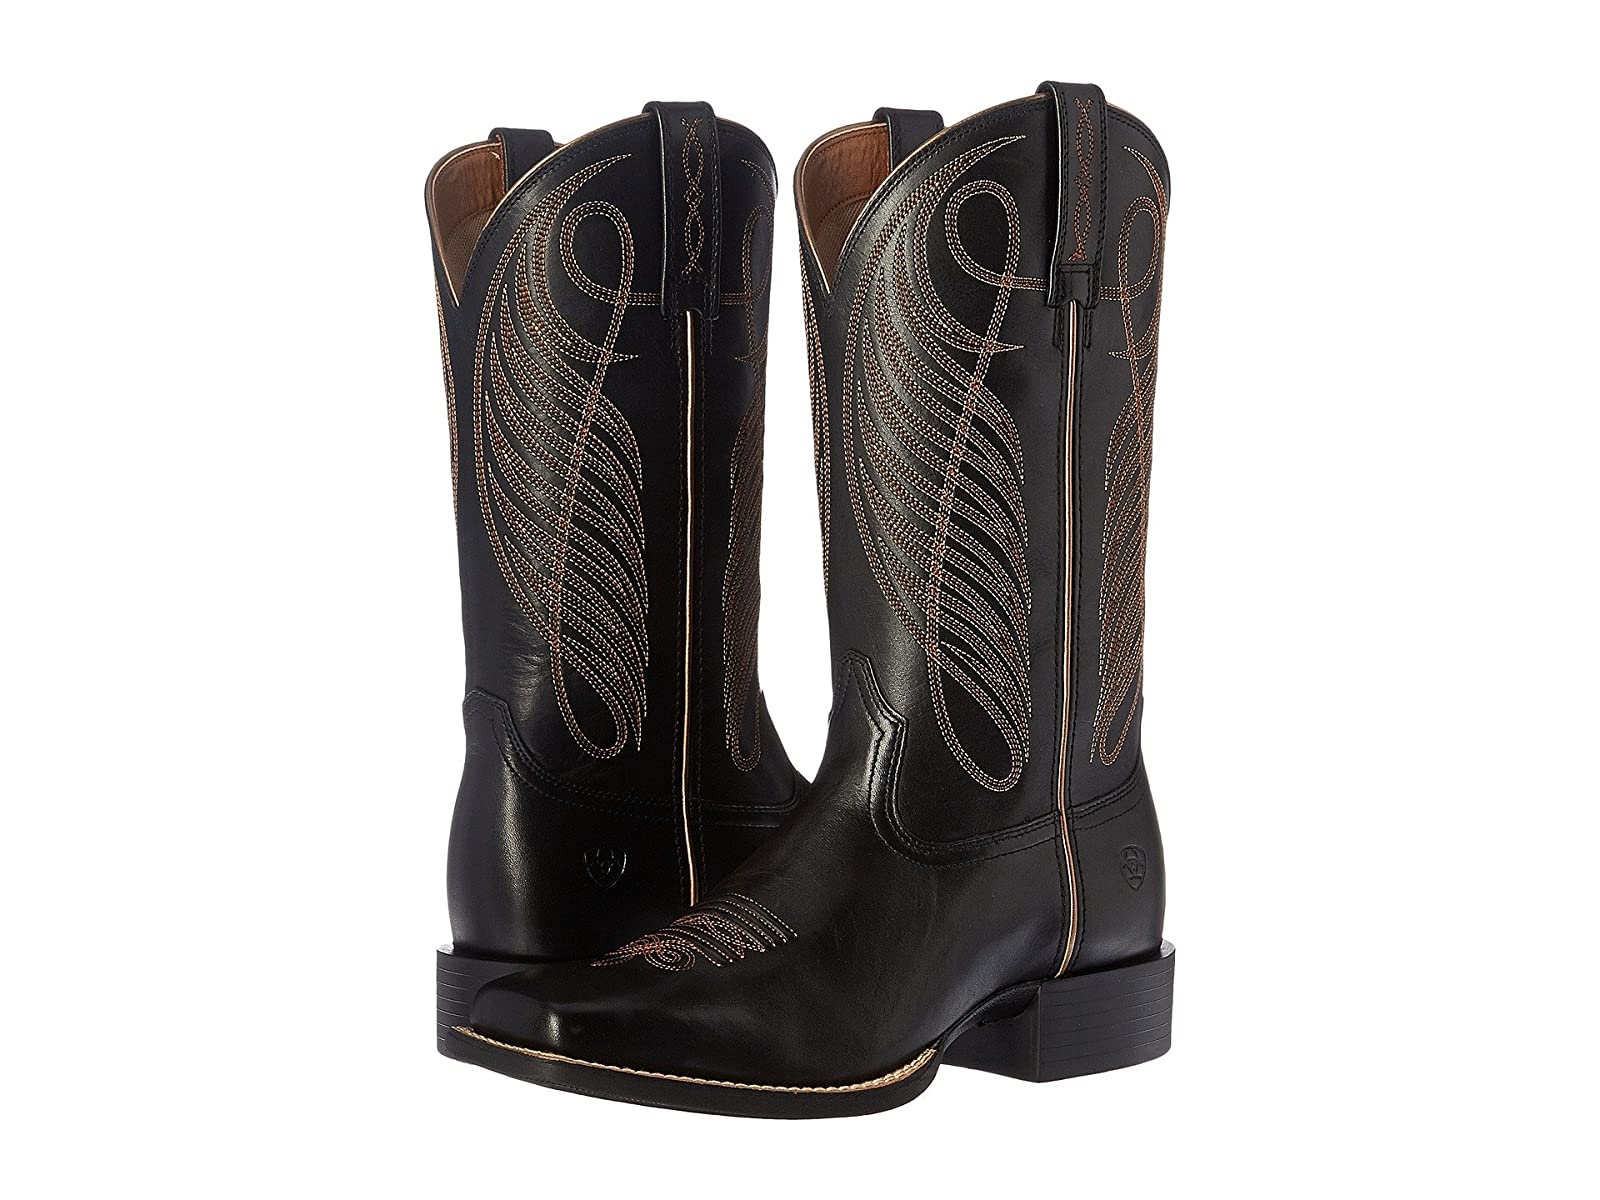 Ariat Round Up Wide SquareSelling fashionable and eye-catching shoes